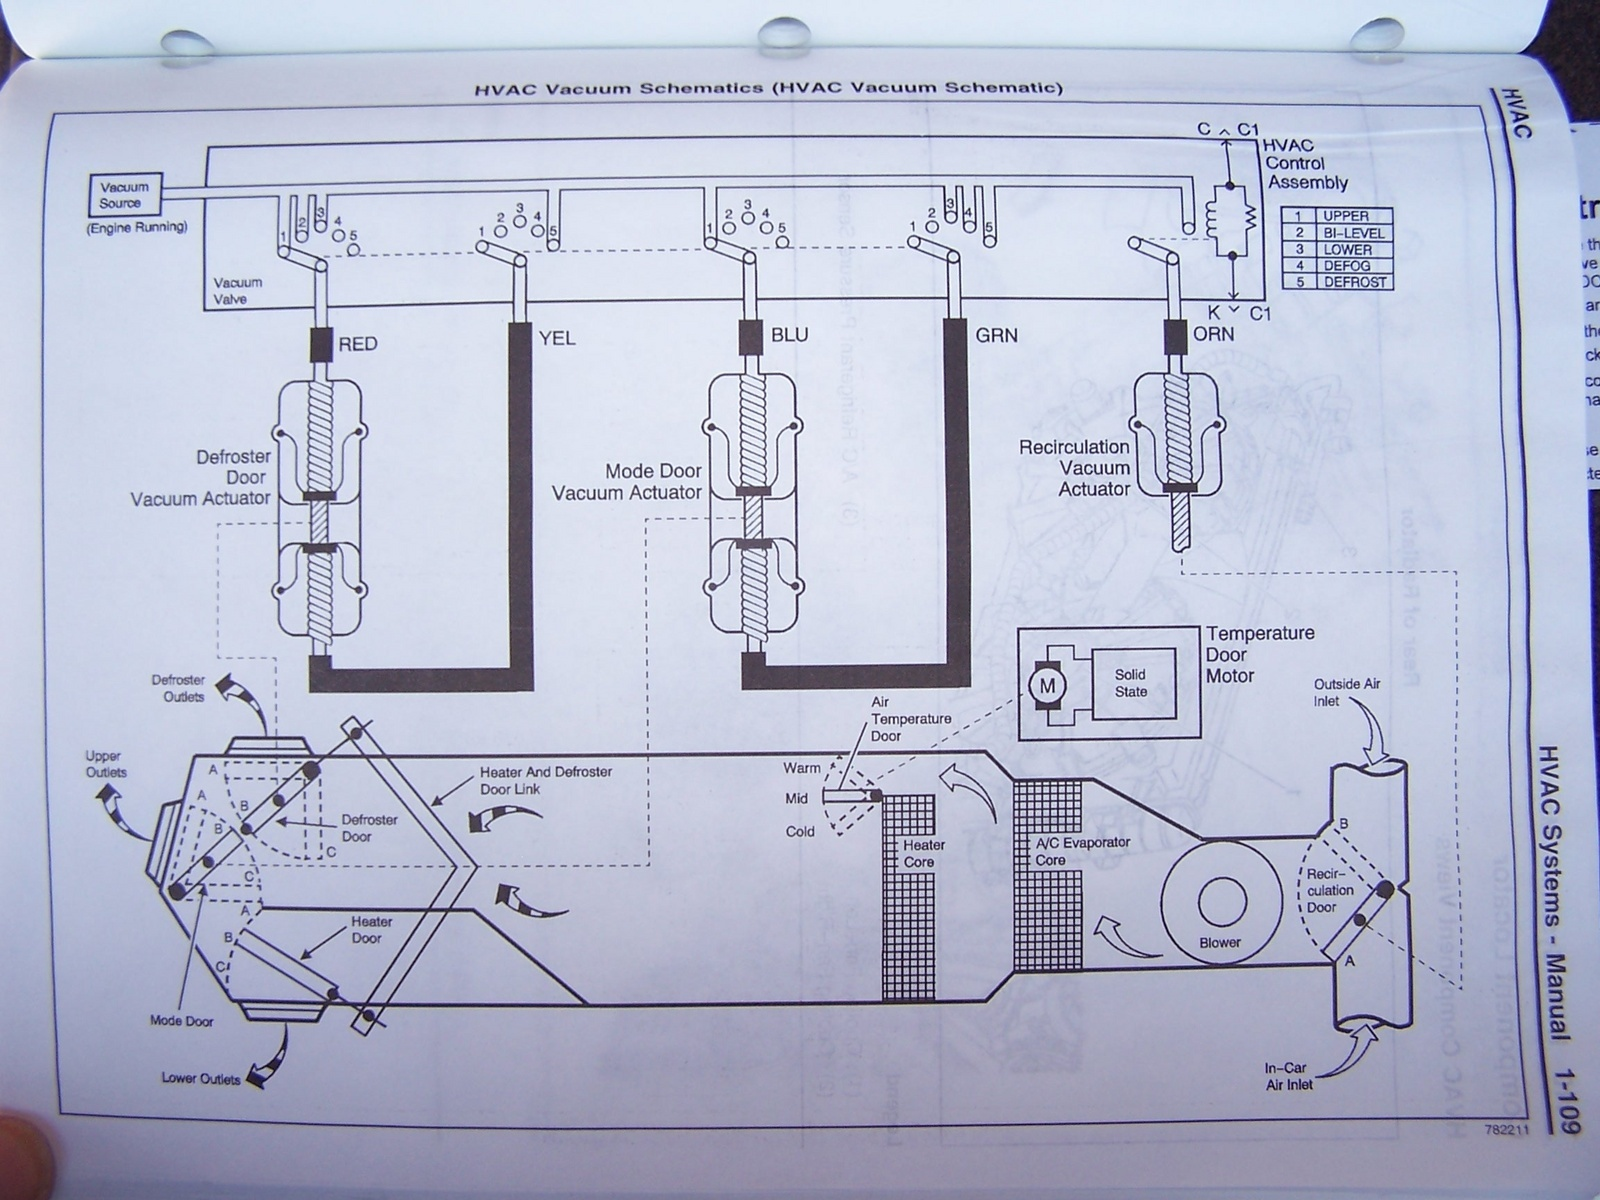 Motor Diagram 1997 Gmc Truck Defroster Wiring Will Be A 1990 Chevy Blazer Sierra 1500 Questions I Have No Air Flow Through Defrost And Rh Cargurus Com